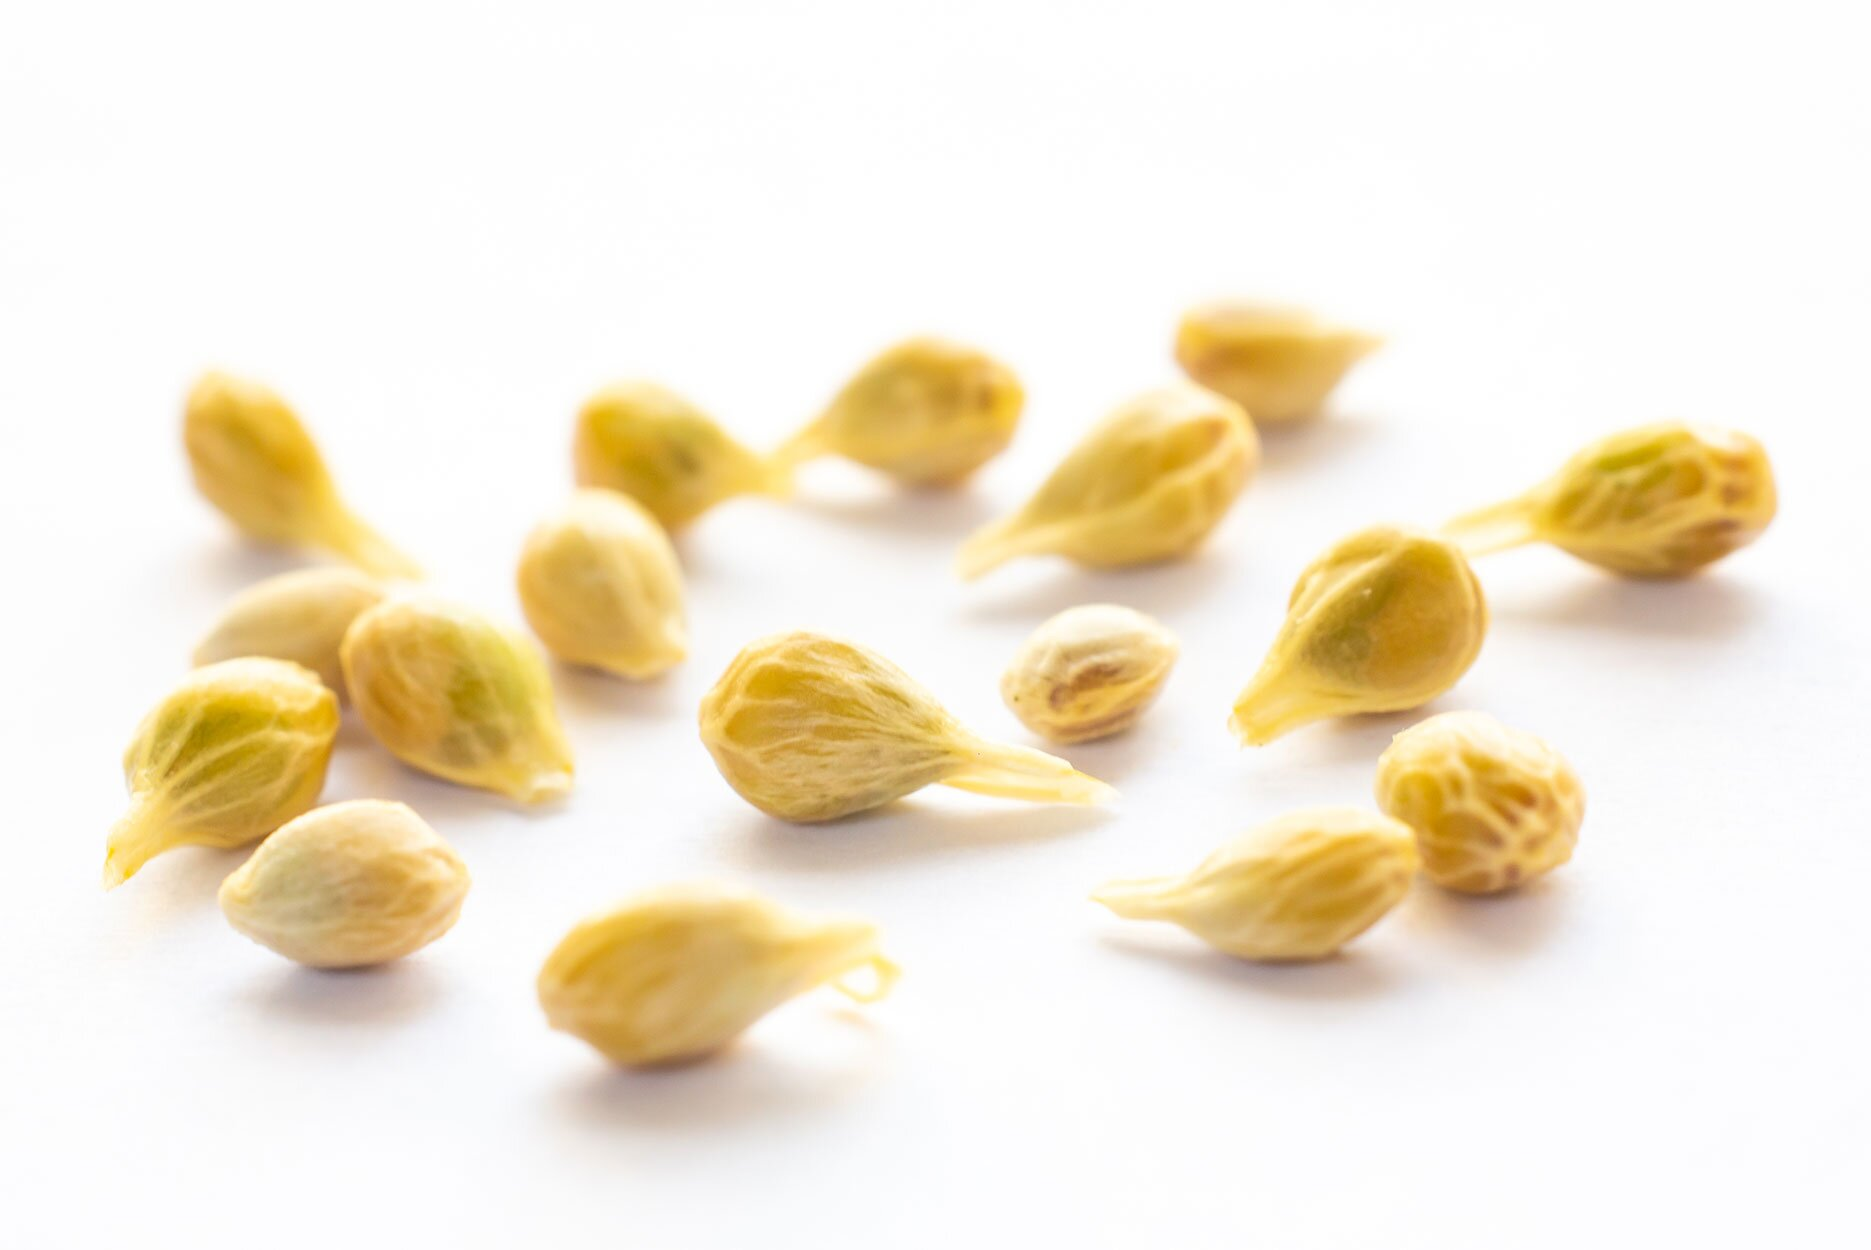 Orange fruit seeds on white background, Close up shot, Selective focus